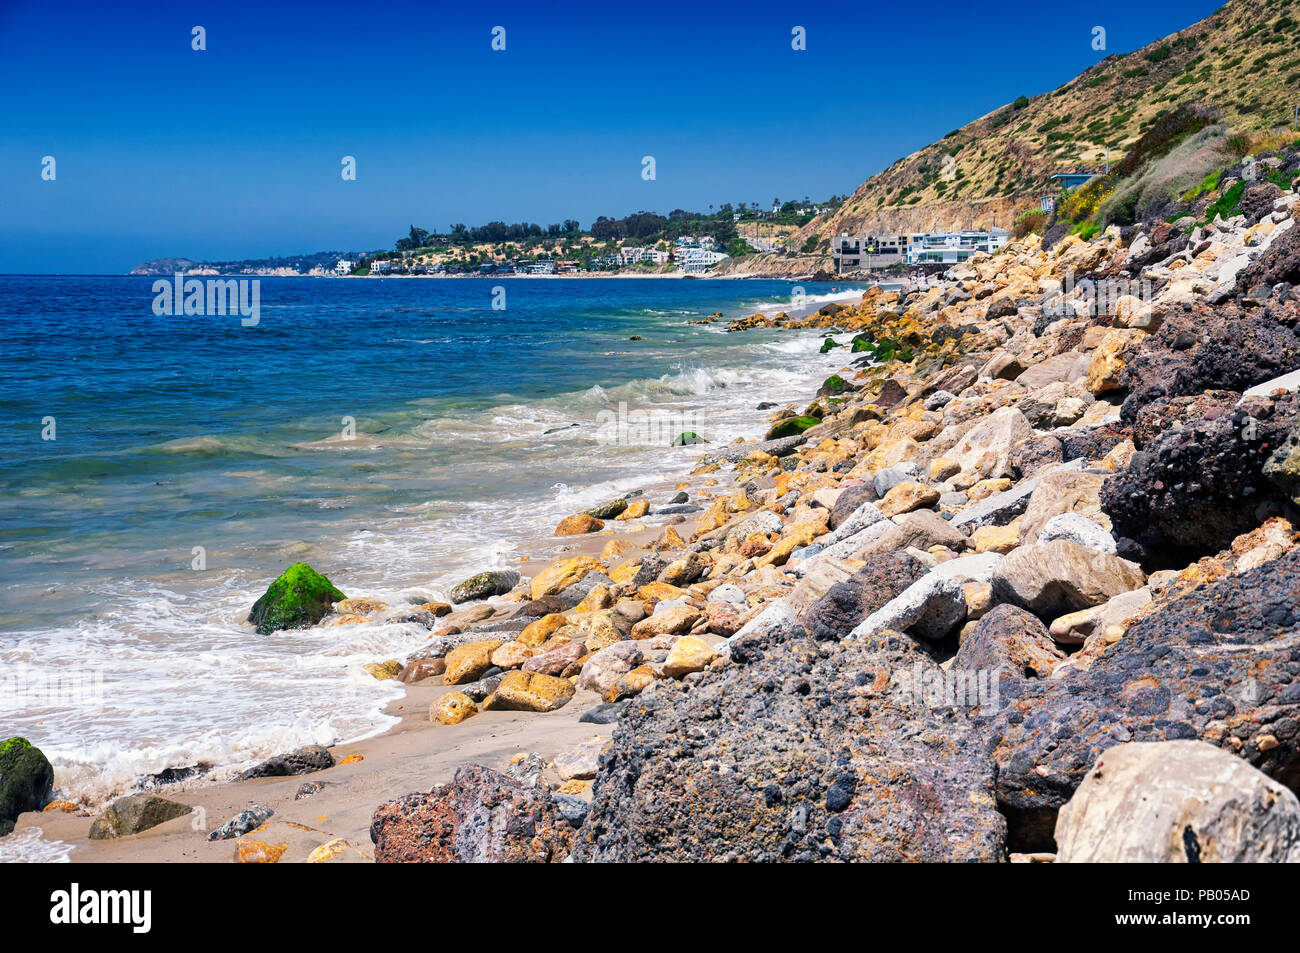 The Pacific Ocean and coastline of california along the pacific coast highway near malibu. - Stock Image